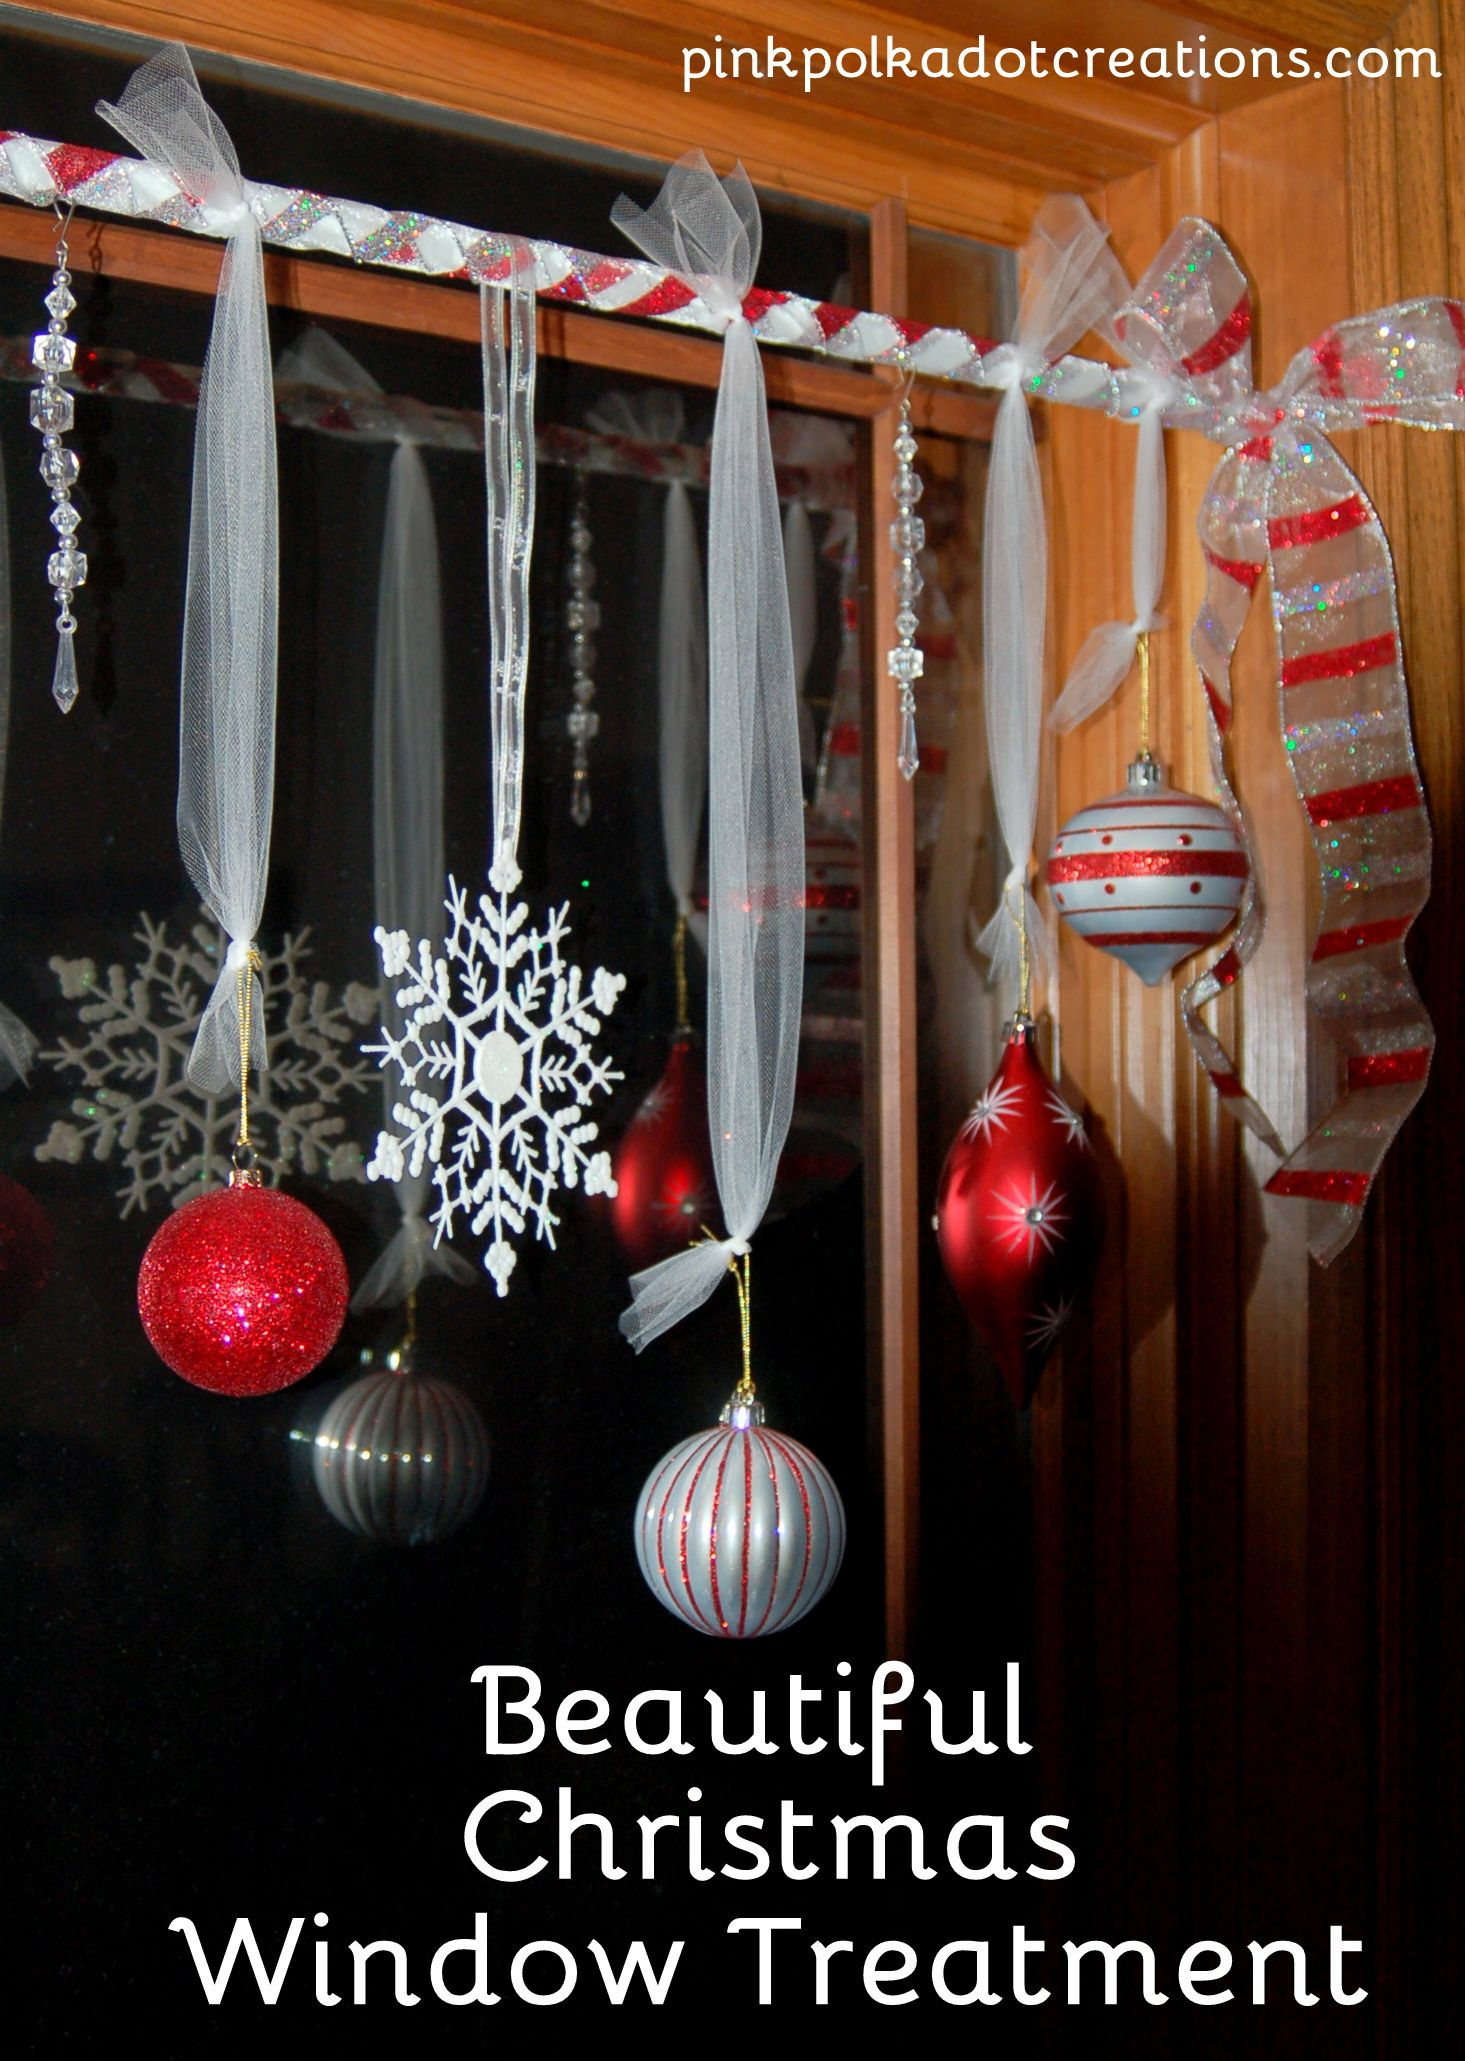 Window decor for christmas  christmas window treatments  pinterest  window easy and house